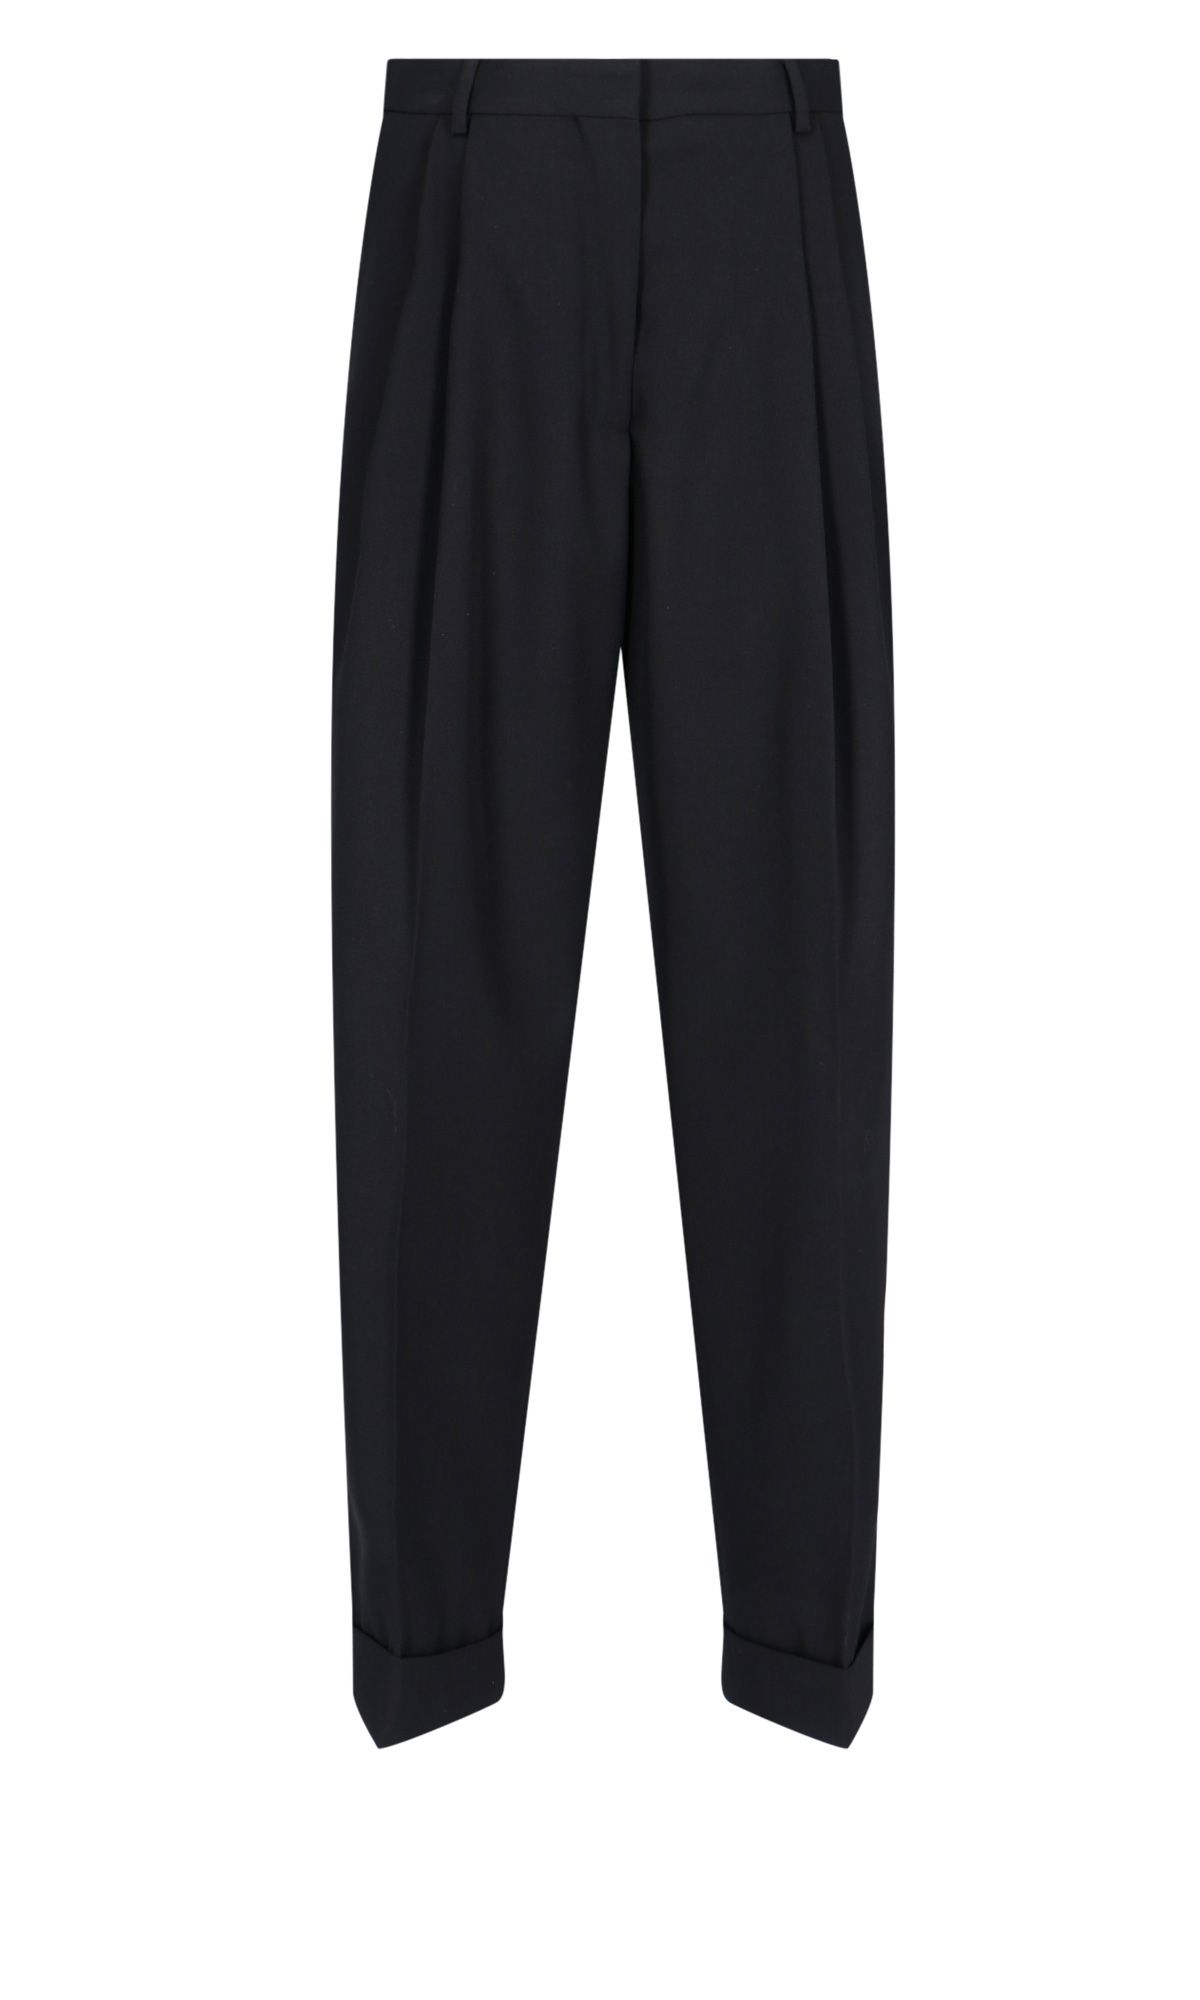 Dries Van Noten DRIES VAN NOTEN WOMEN'S BLACK POLYESTER PANTS